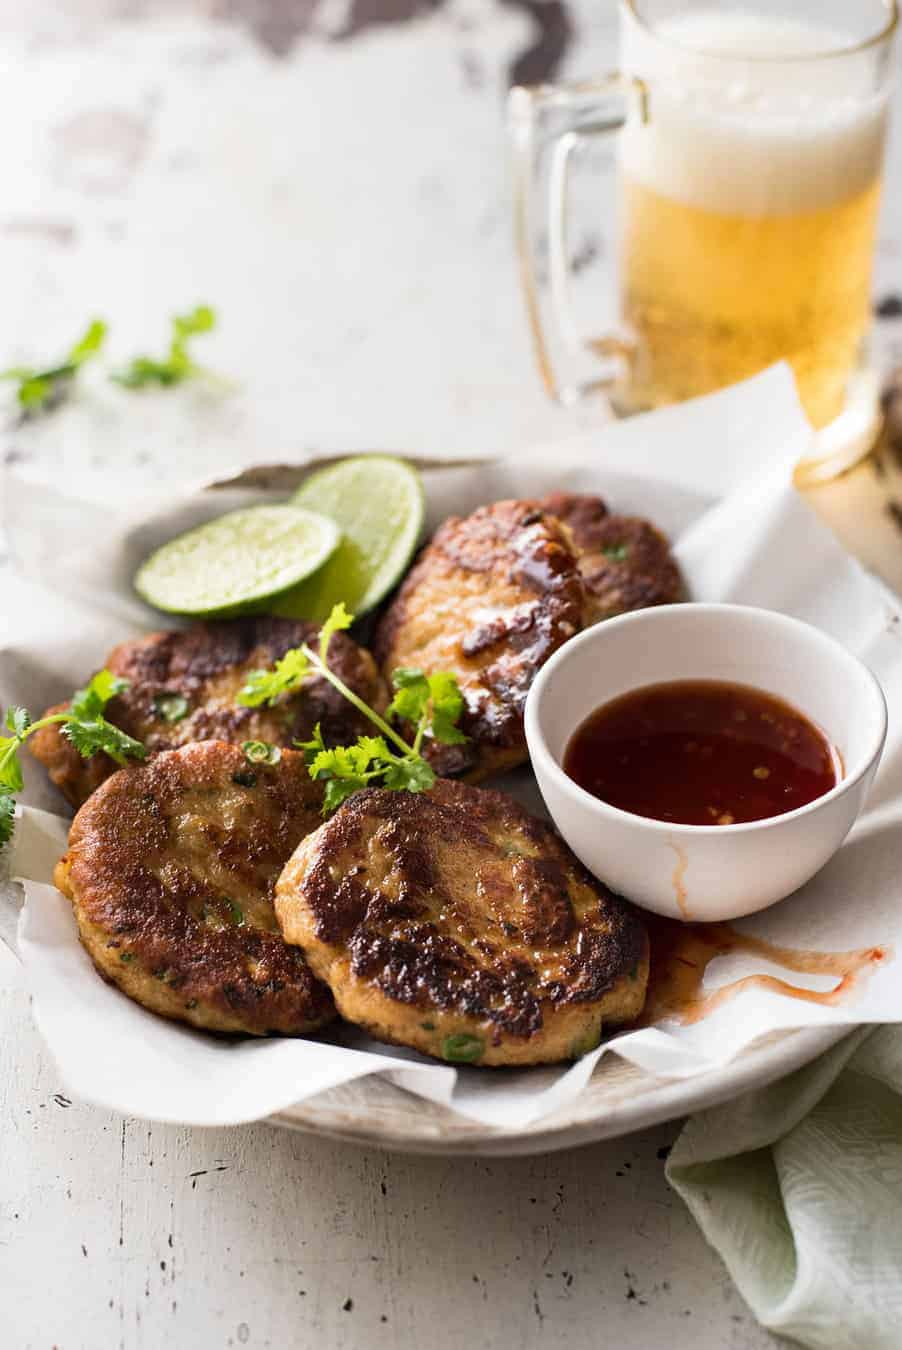 Thai Fish Cakes This Popular Thai Appetizer Is So Simple To Make This Is